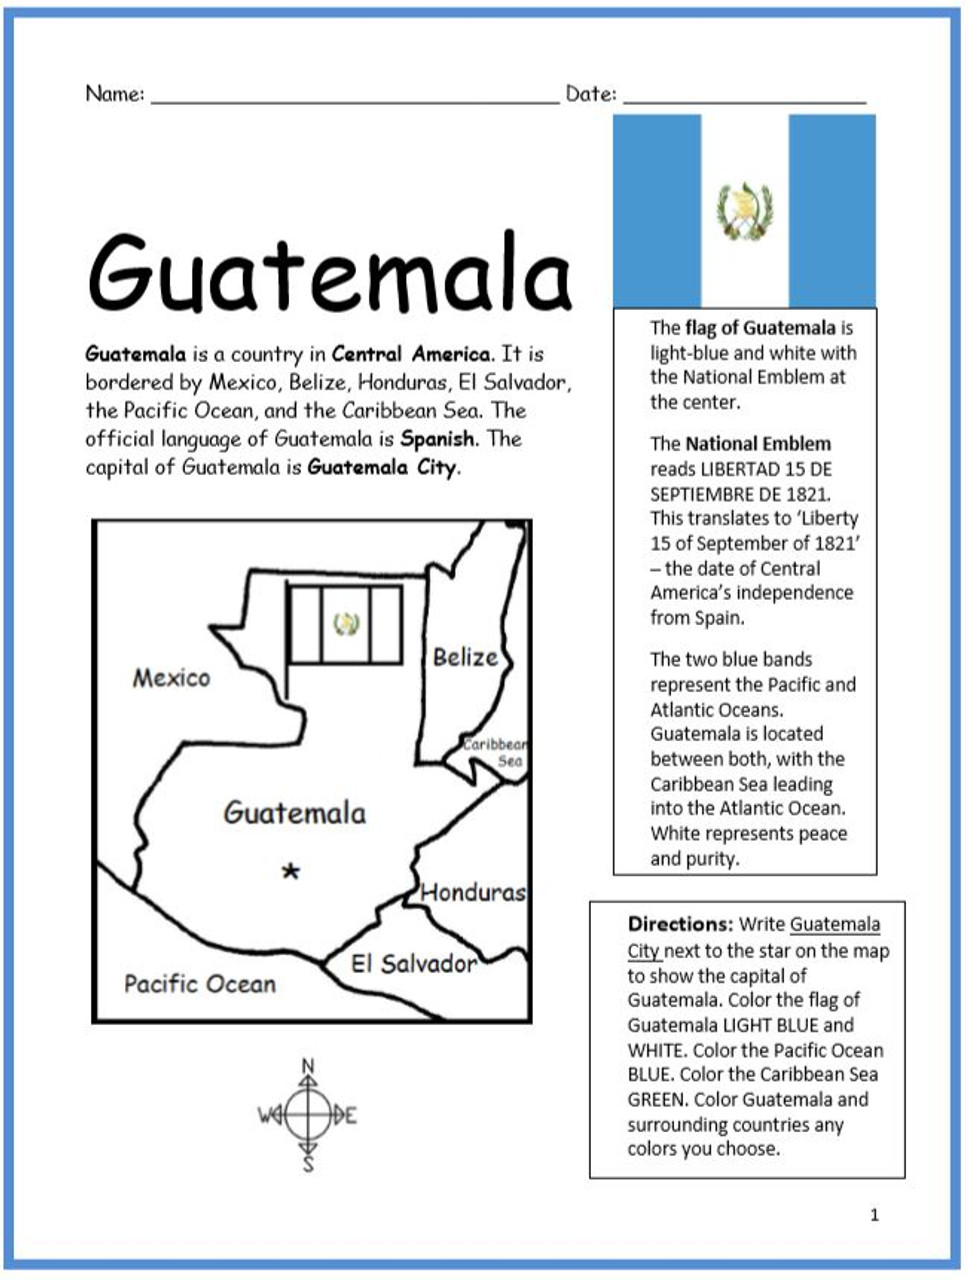 medium resolution of Color and Learn Geography - Guatemala - Amped Up Learning